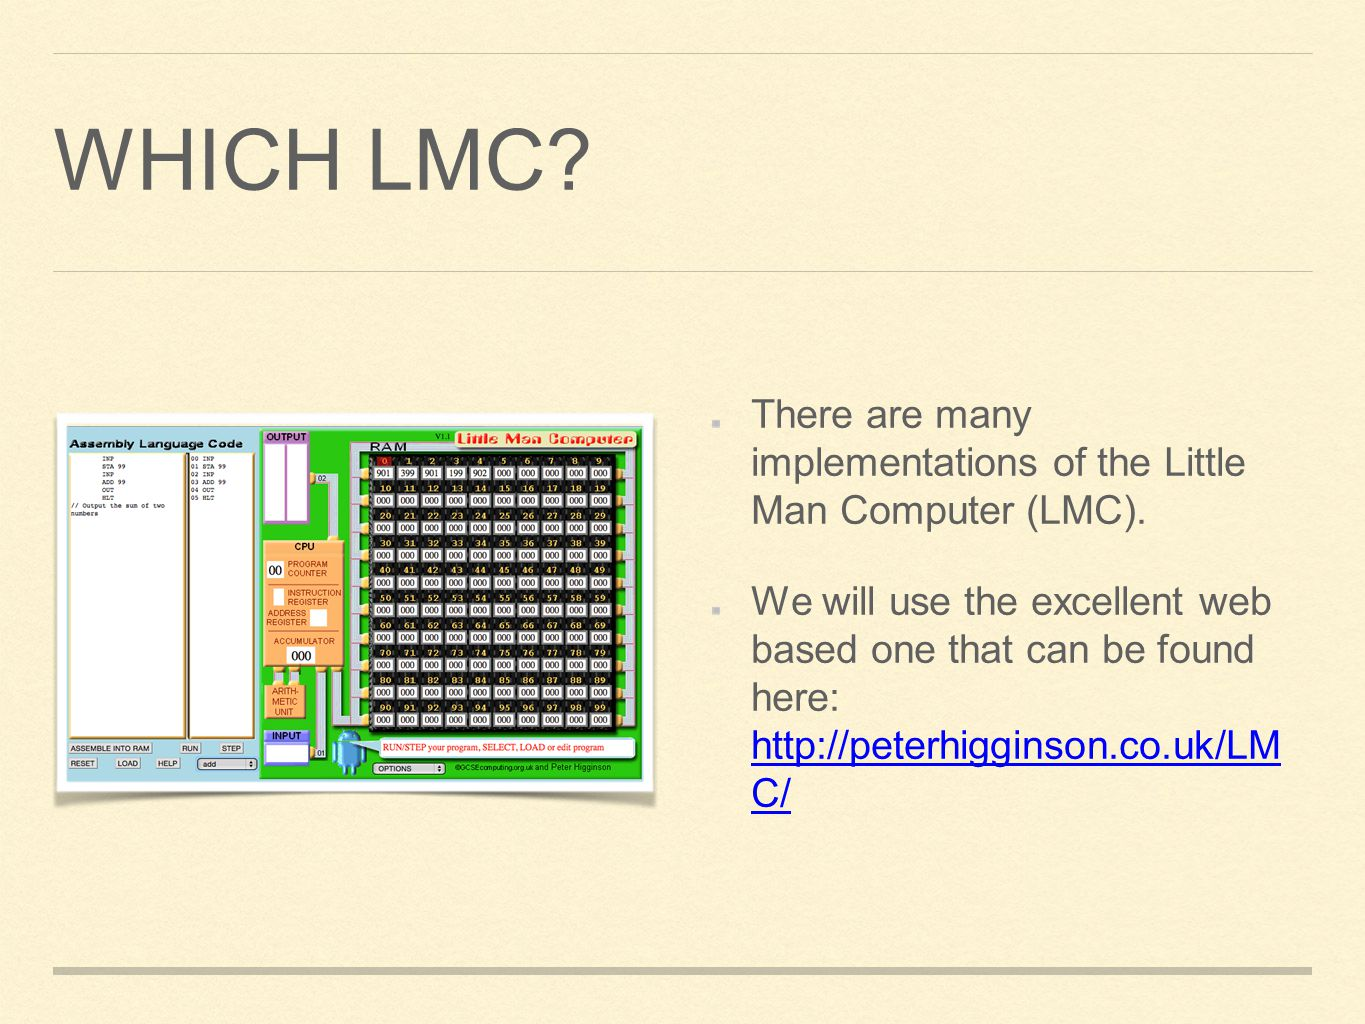 Which LMC There are many implementations of the Little Man Computer (LMC).